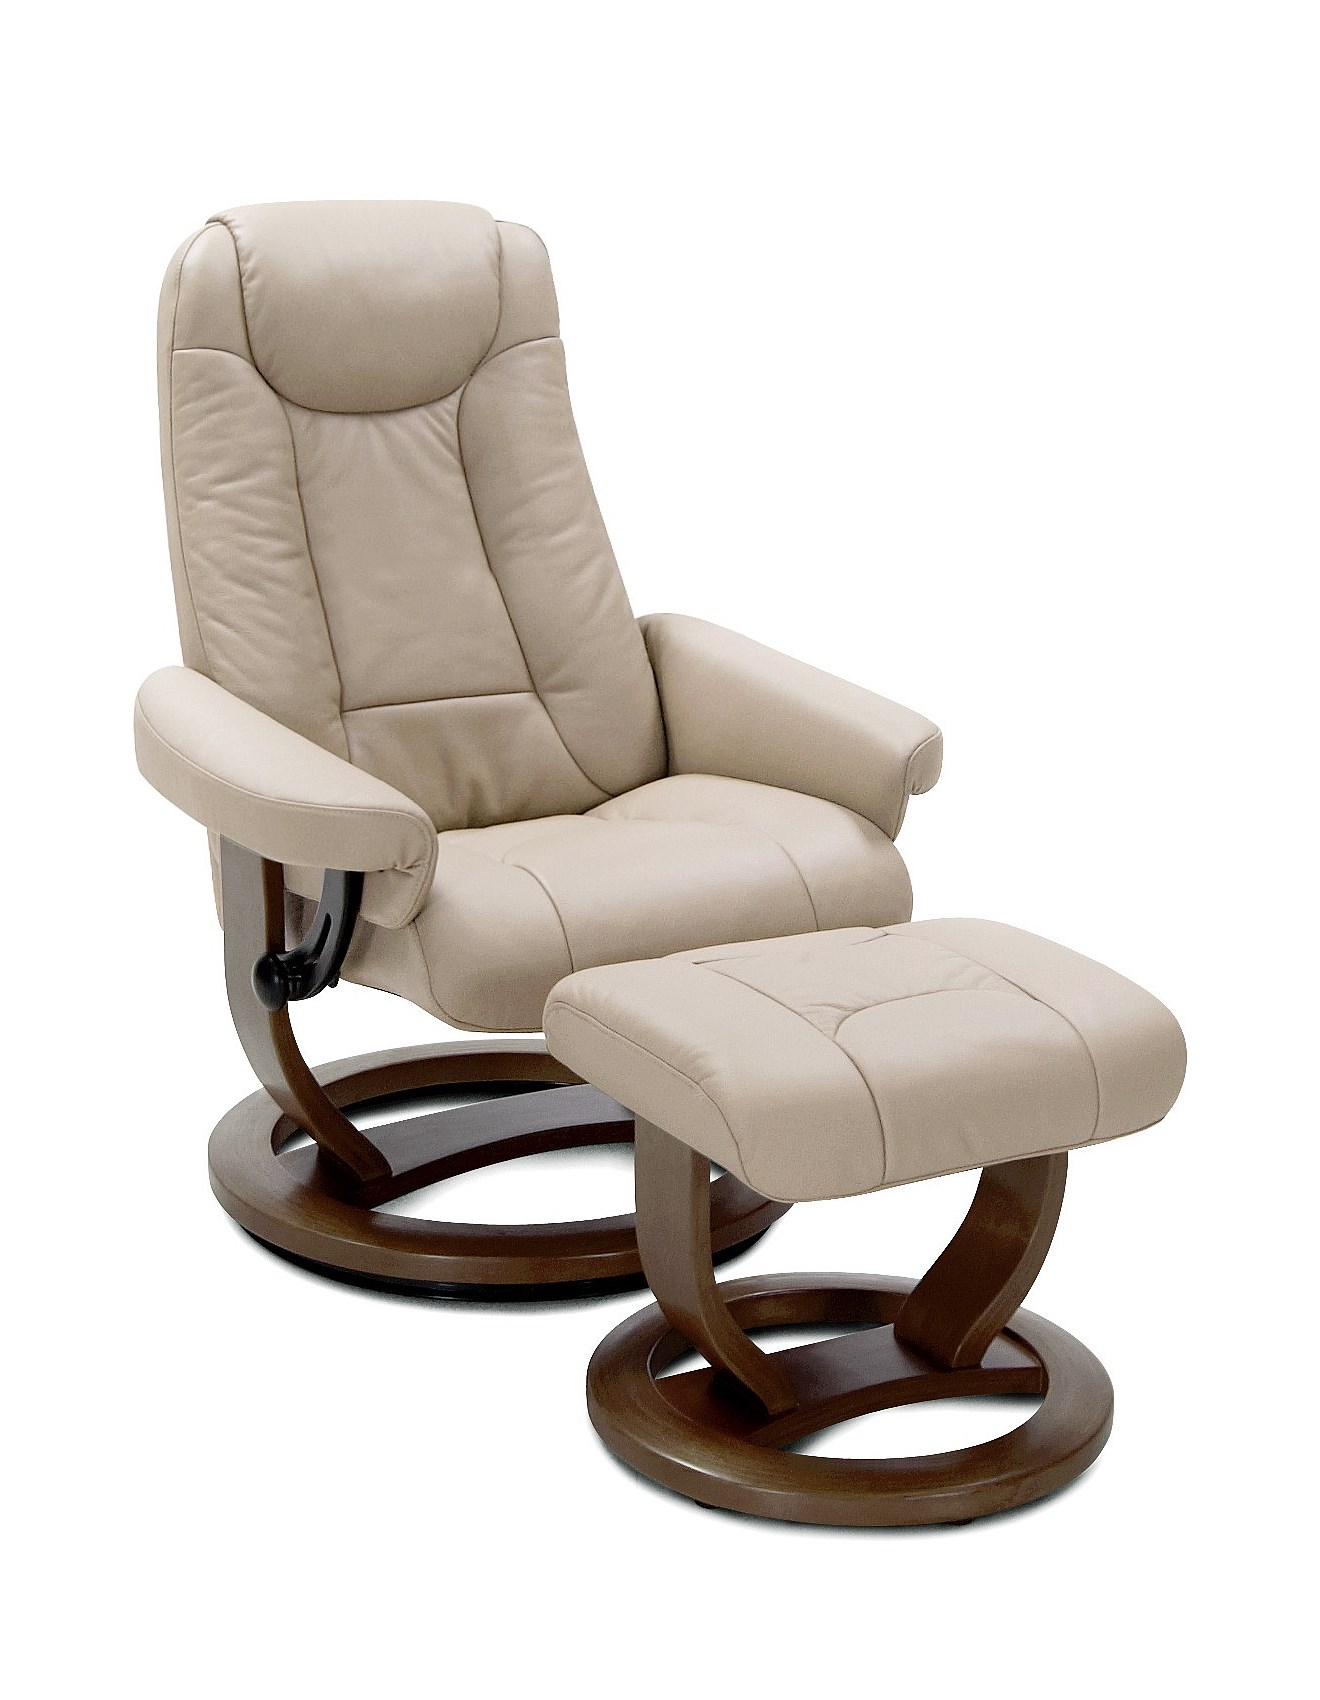 Moran Recliners Chairs Maitland Active Comfort Chair Sterling Latte Leather